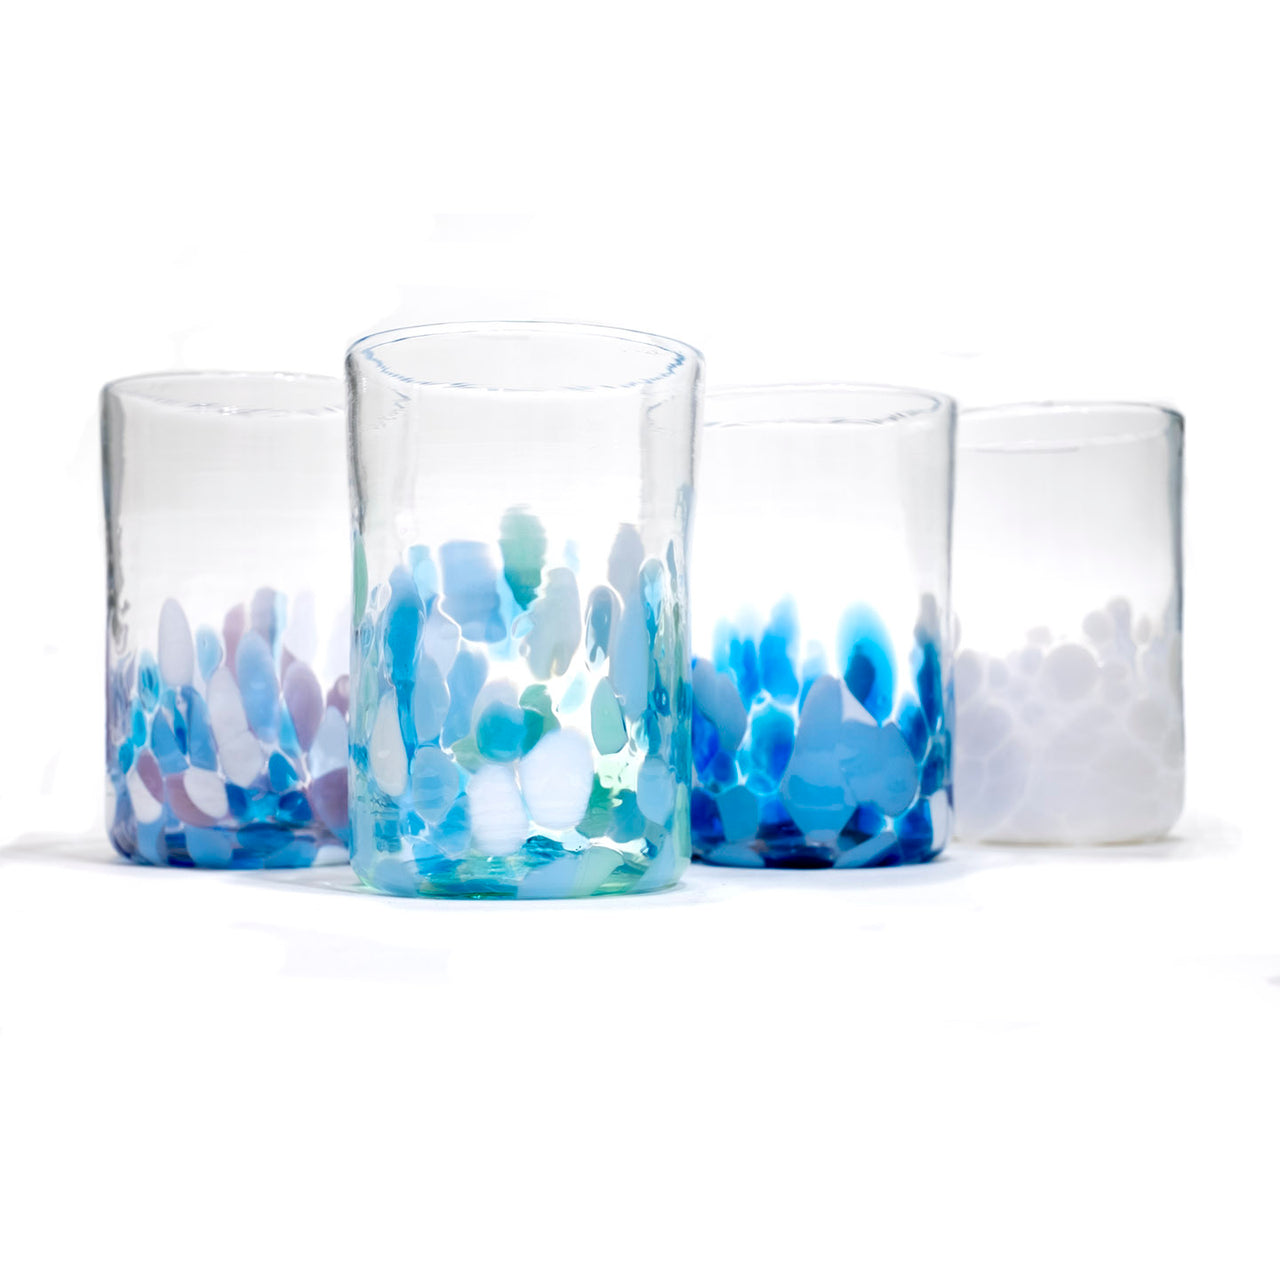 Winter Pastel Tumbler Series